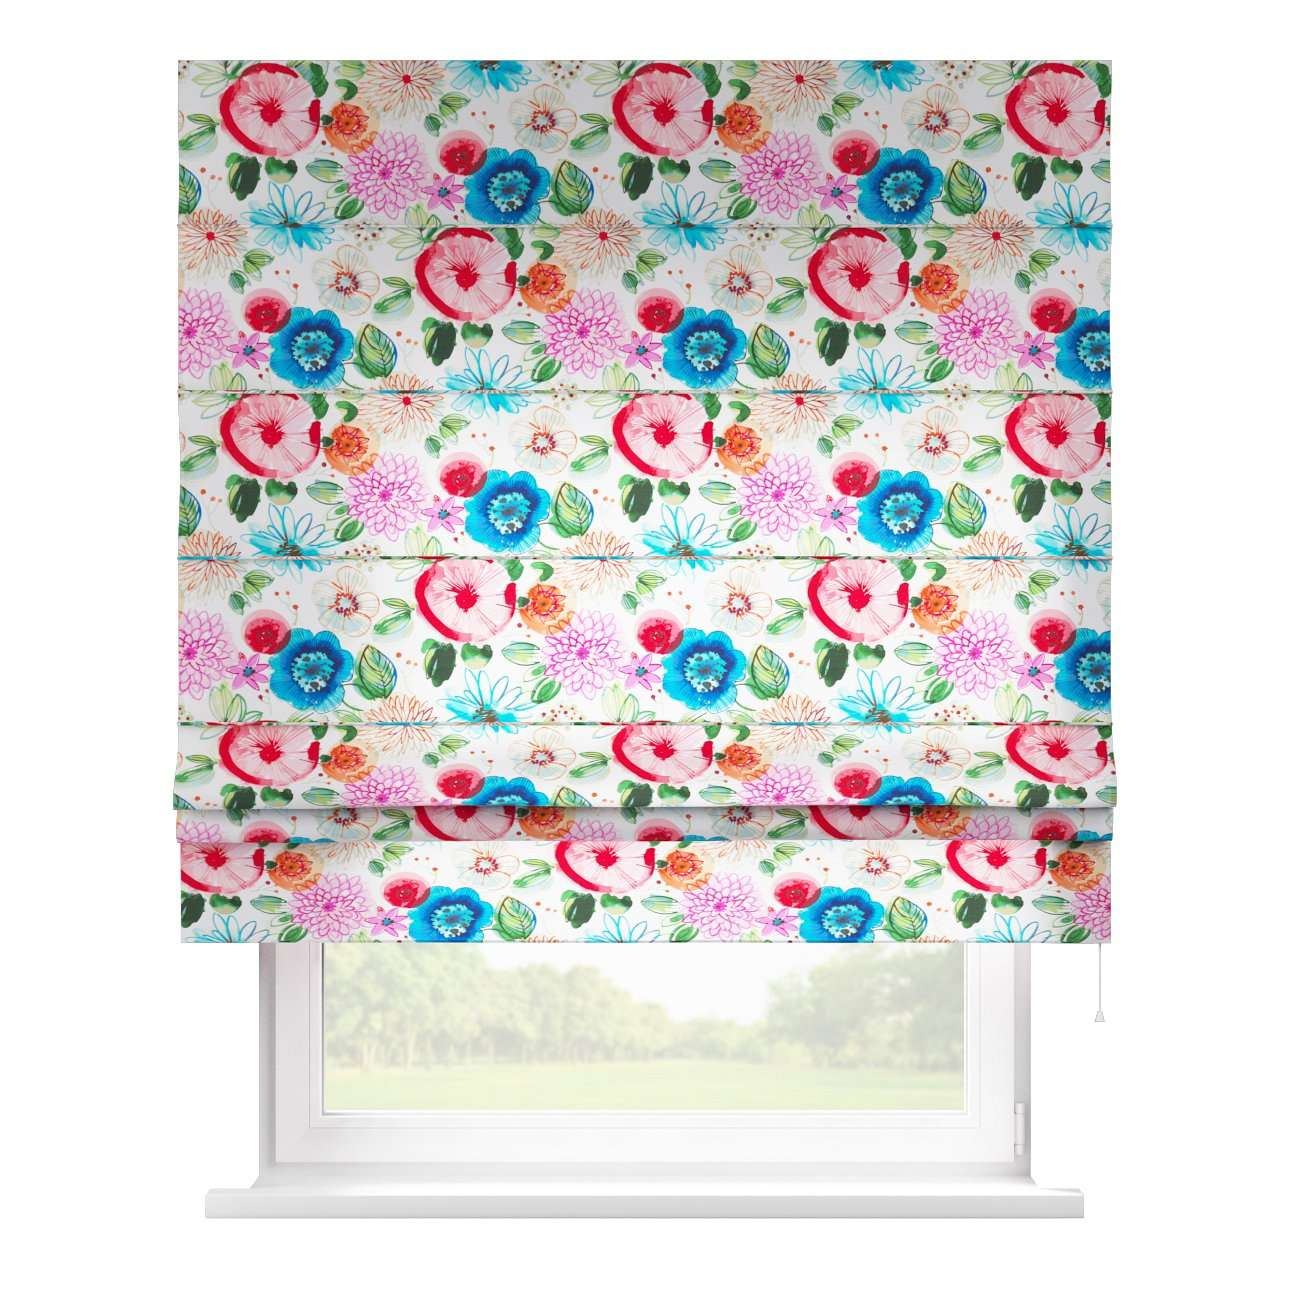 Padva roman blind  80 x 170 cm (31.5 x 67 inch) in collection New Art, fabric: 140-24